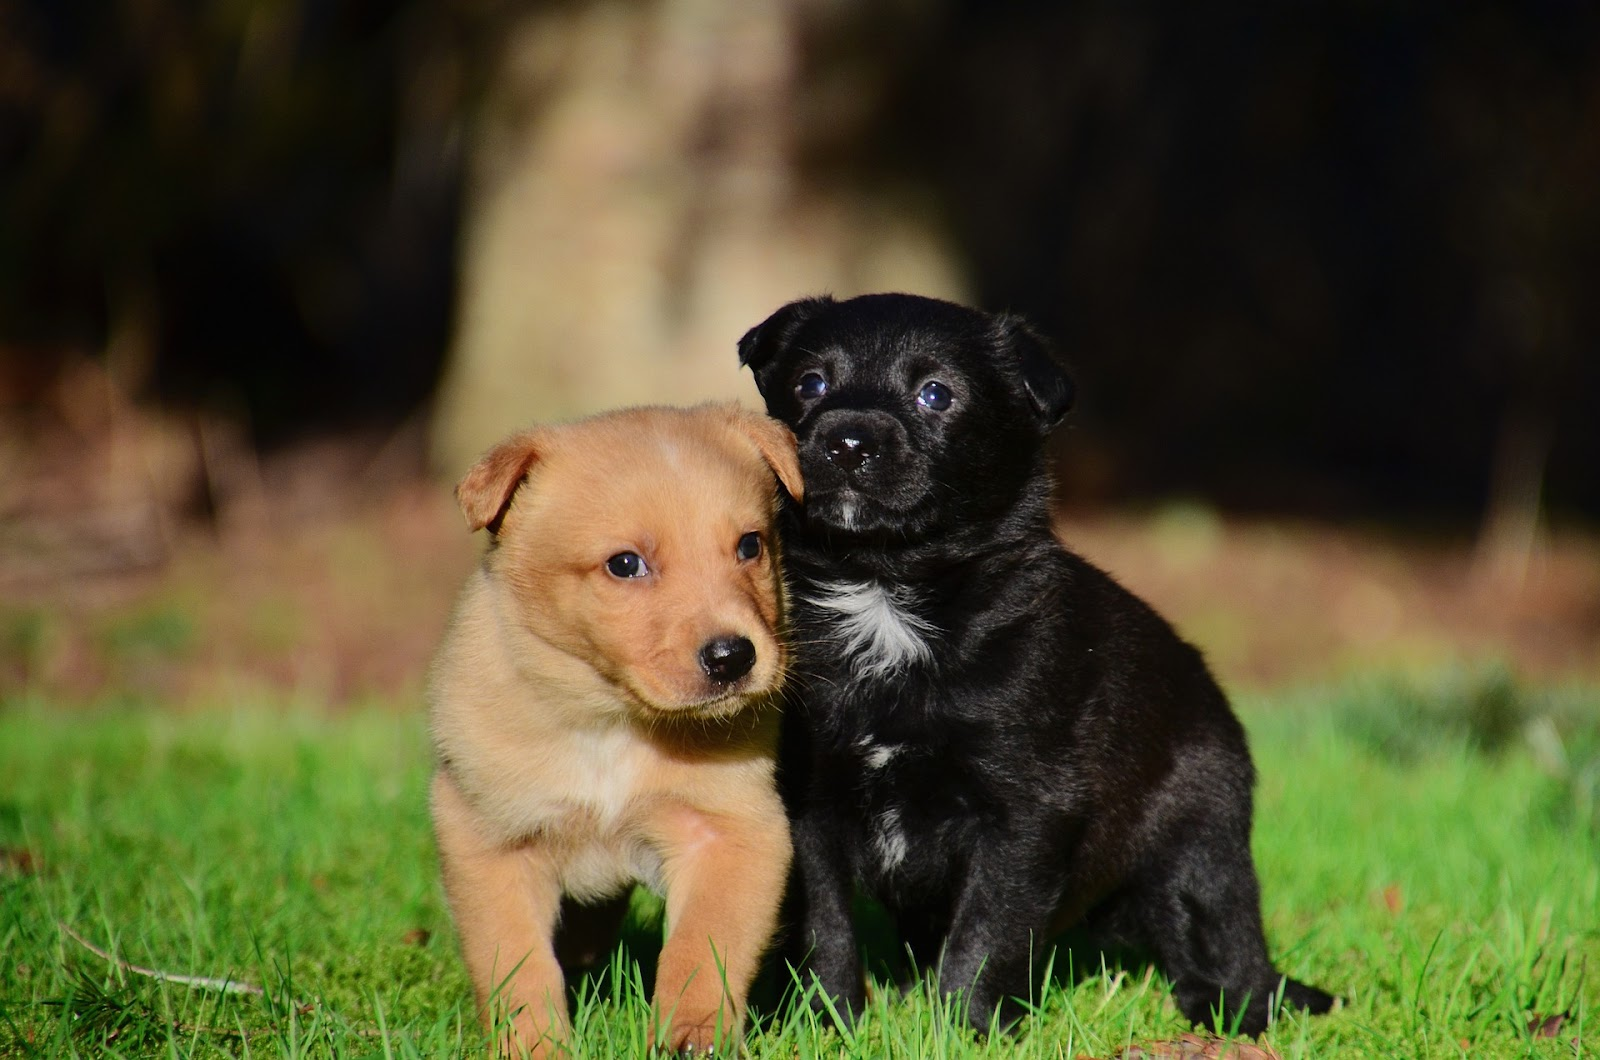 two puppies play in the grass